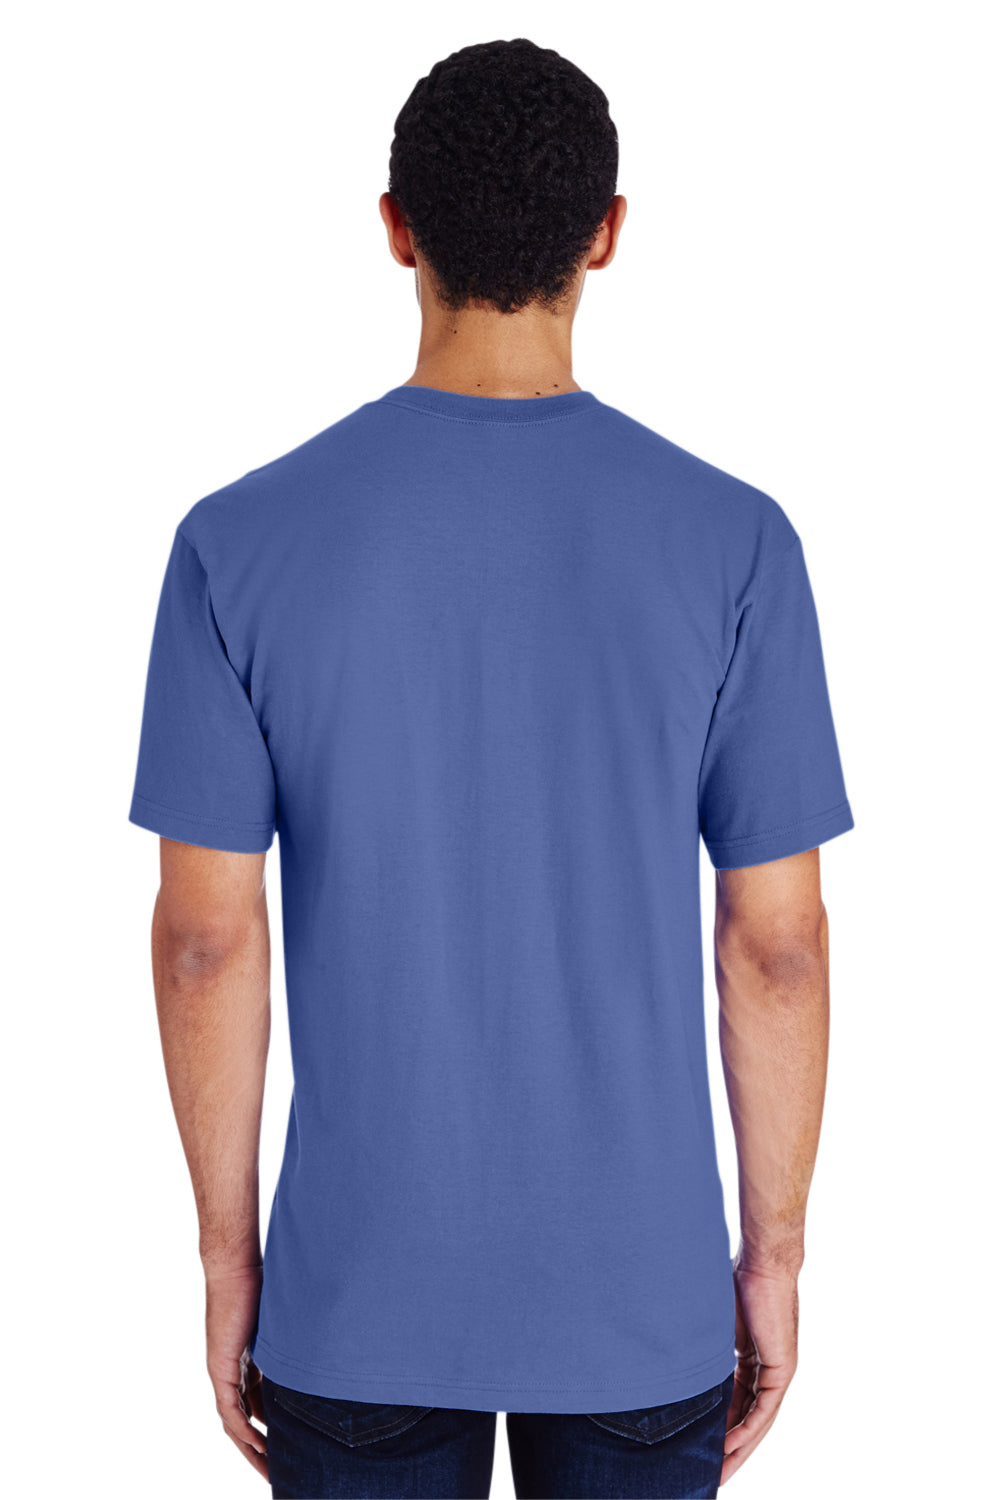 Gildan H000 Mens Hammer Short Sleeve Crewneck T-Shirt Flo Blue Back